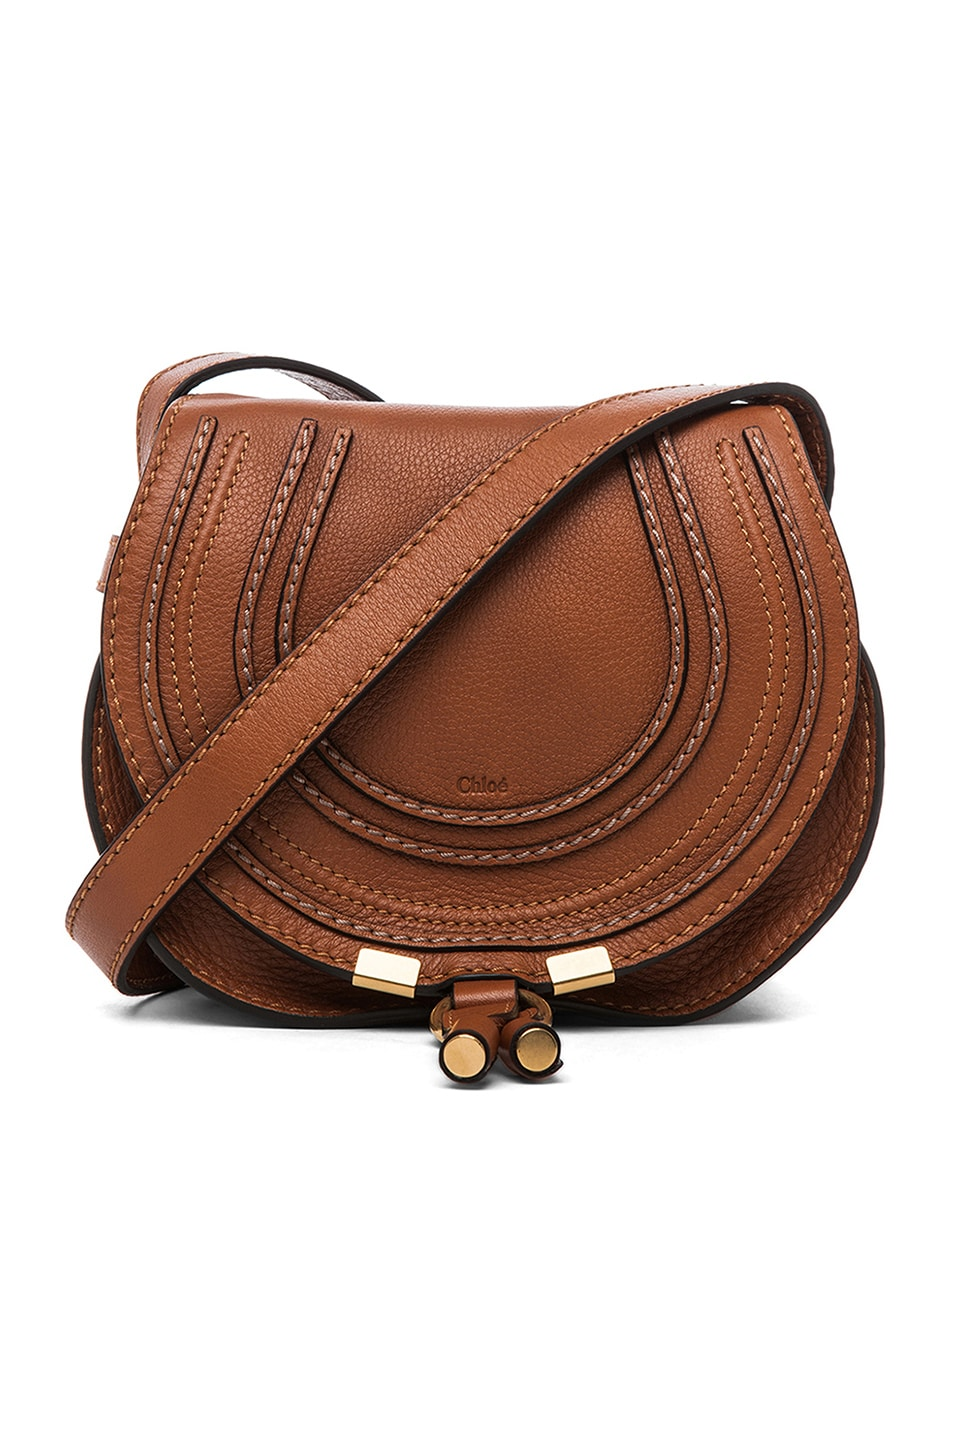 Image 1 of Chloe Small Marcie Grained Calfskin Saddle Bag in Tan